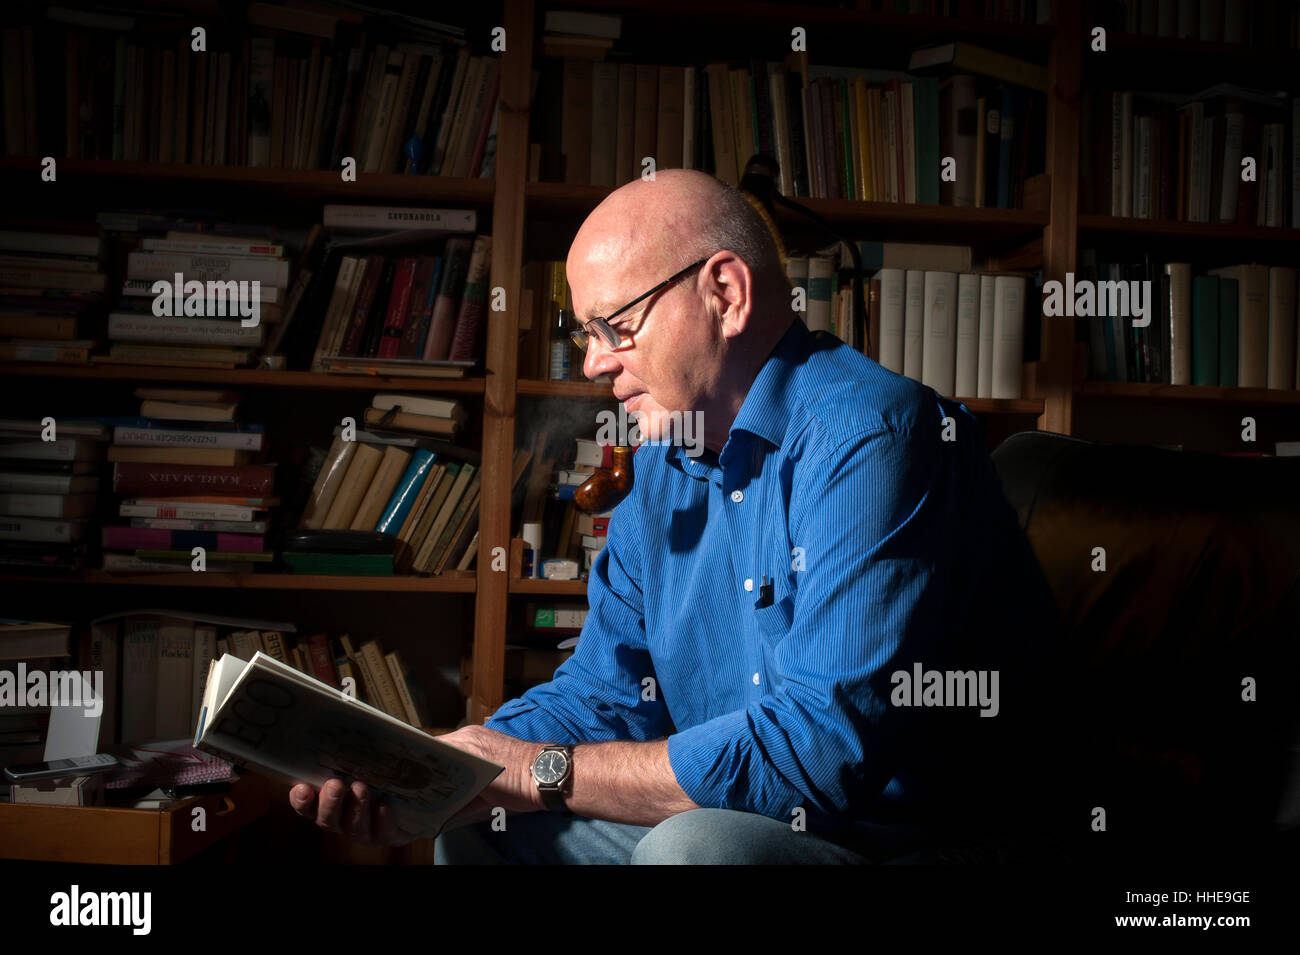 A pensioner reading in his study at home. - Stock Image